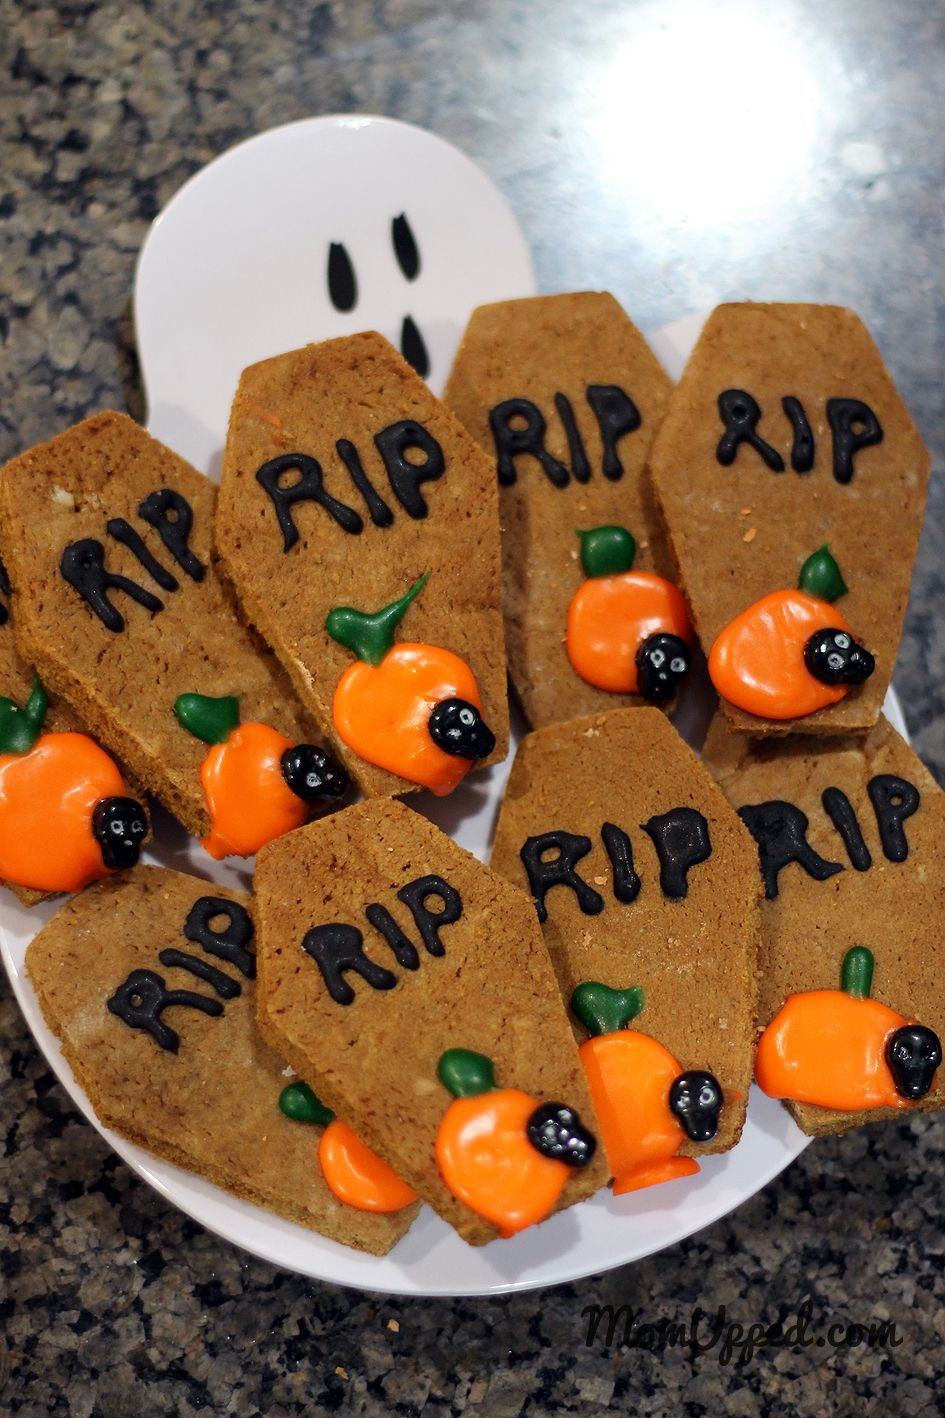 Halloween Cookies.  http://www.momupped.com/the-best-halloween-party.html